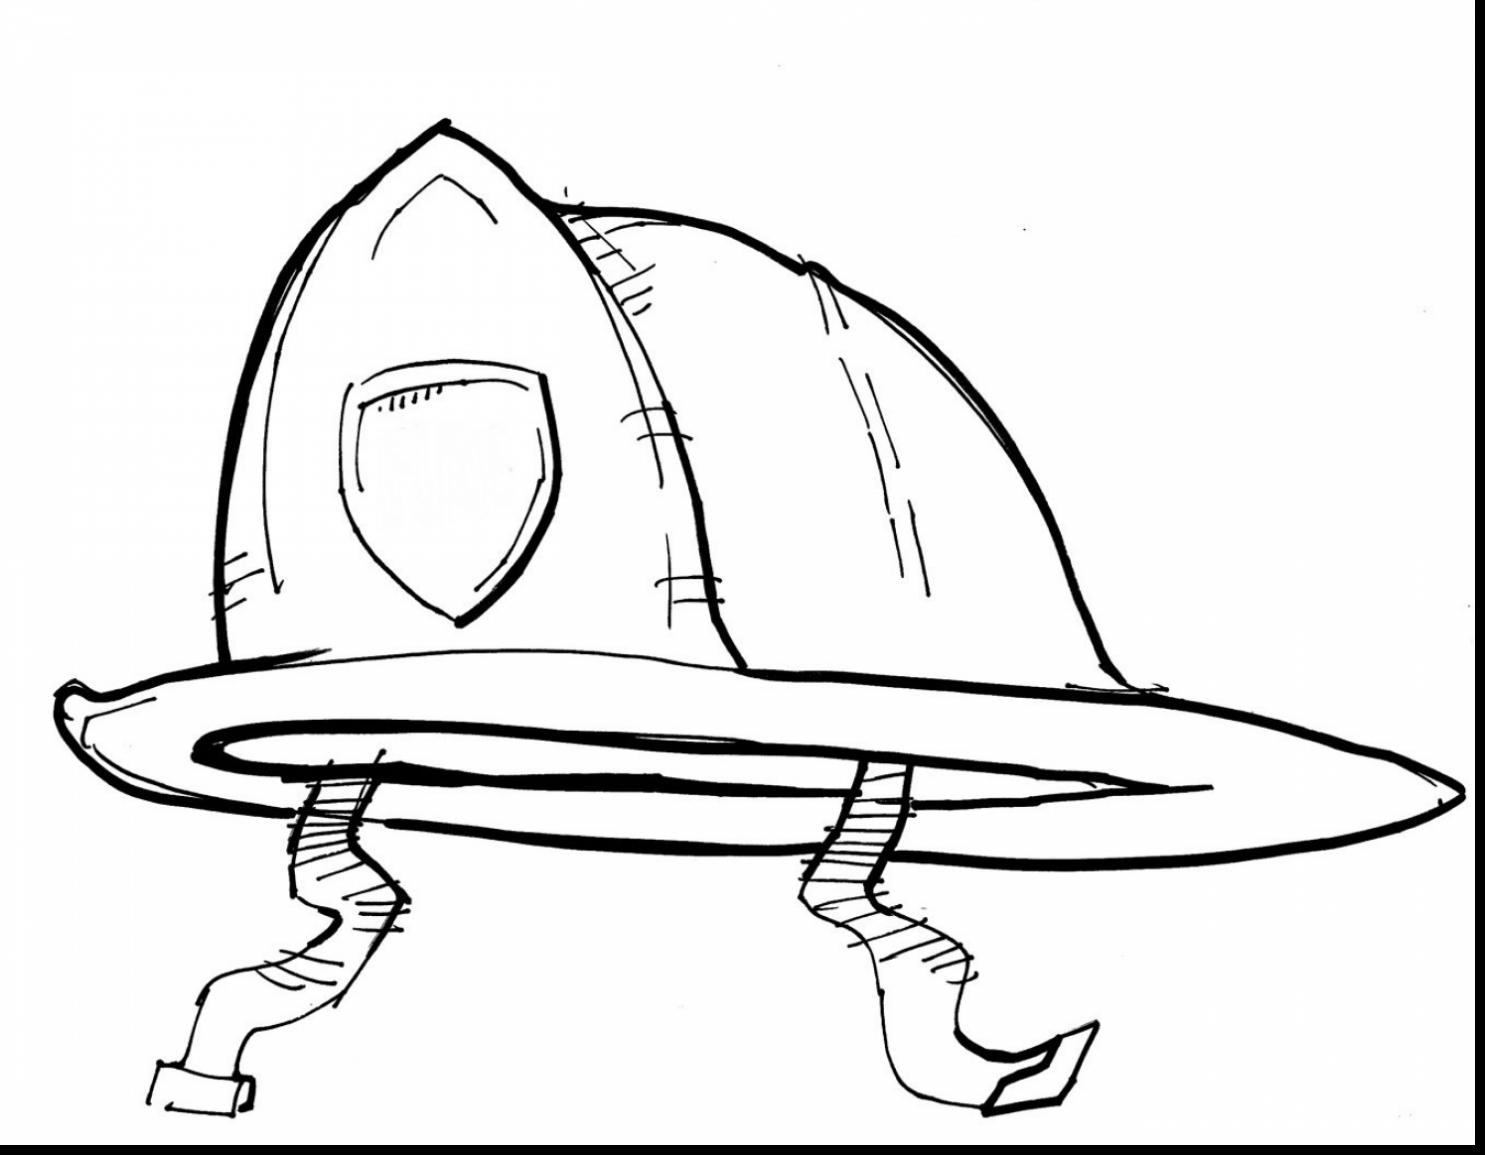 1485x1155 Brilliant Firefighter Hat Coloring Page With Firefighter Coloring